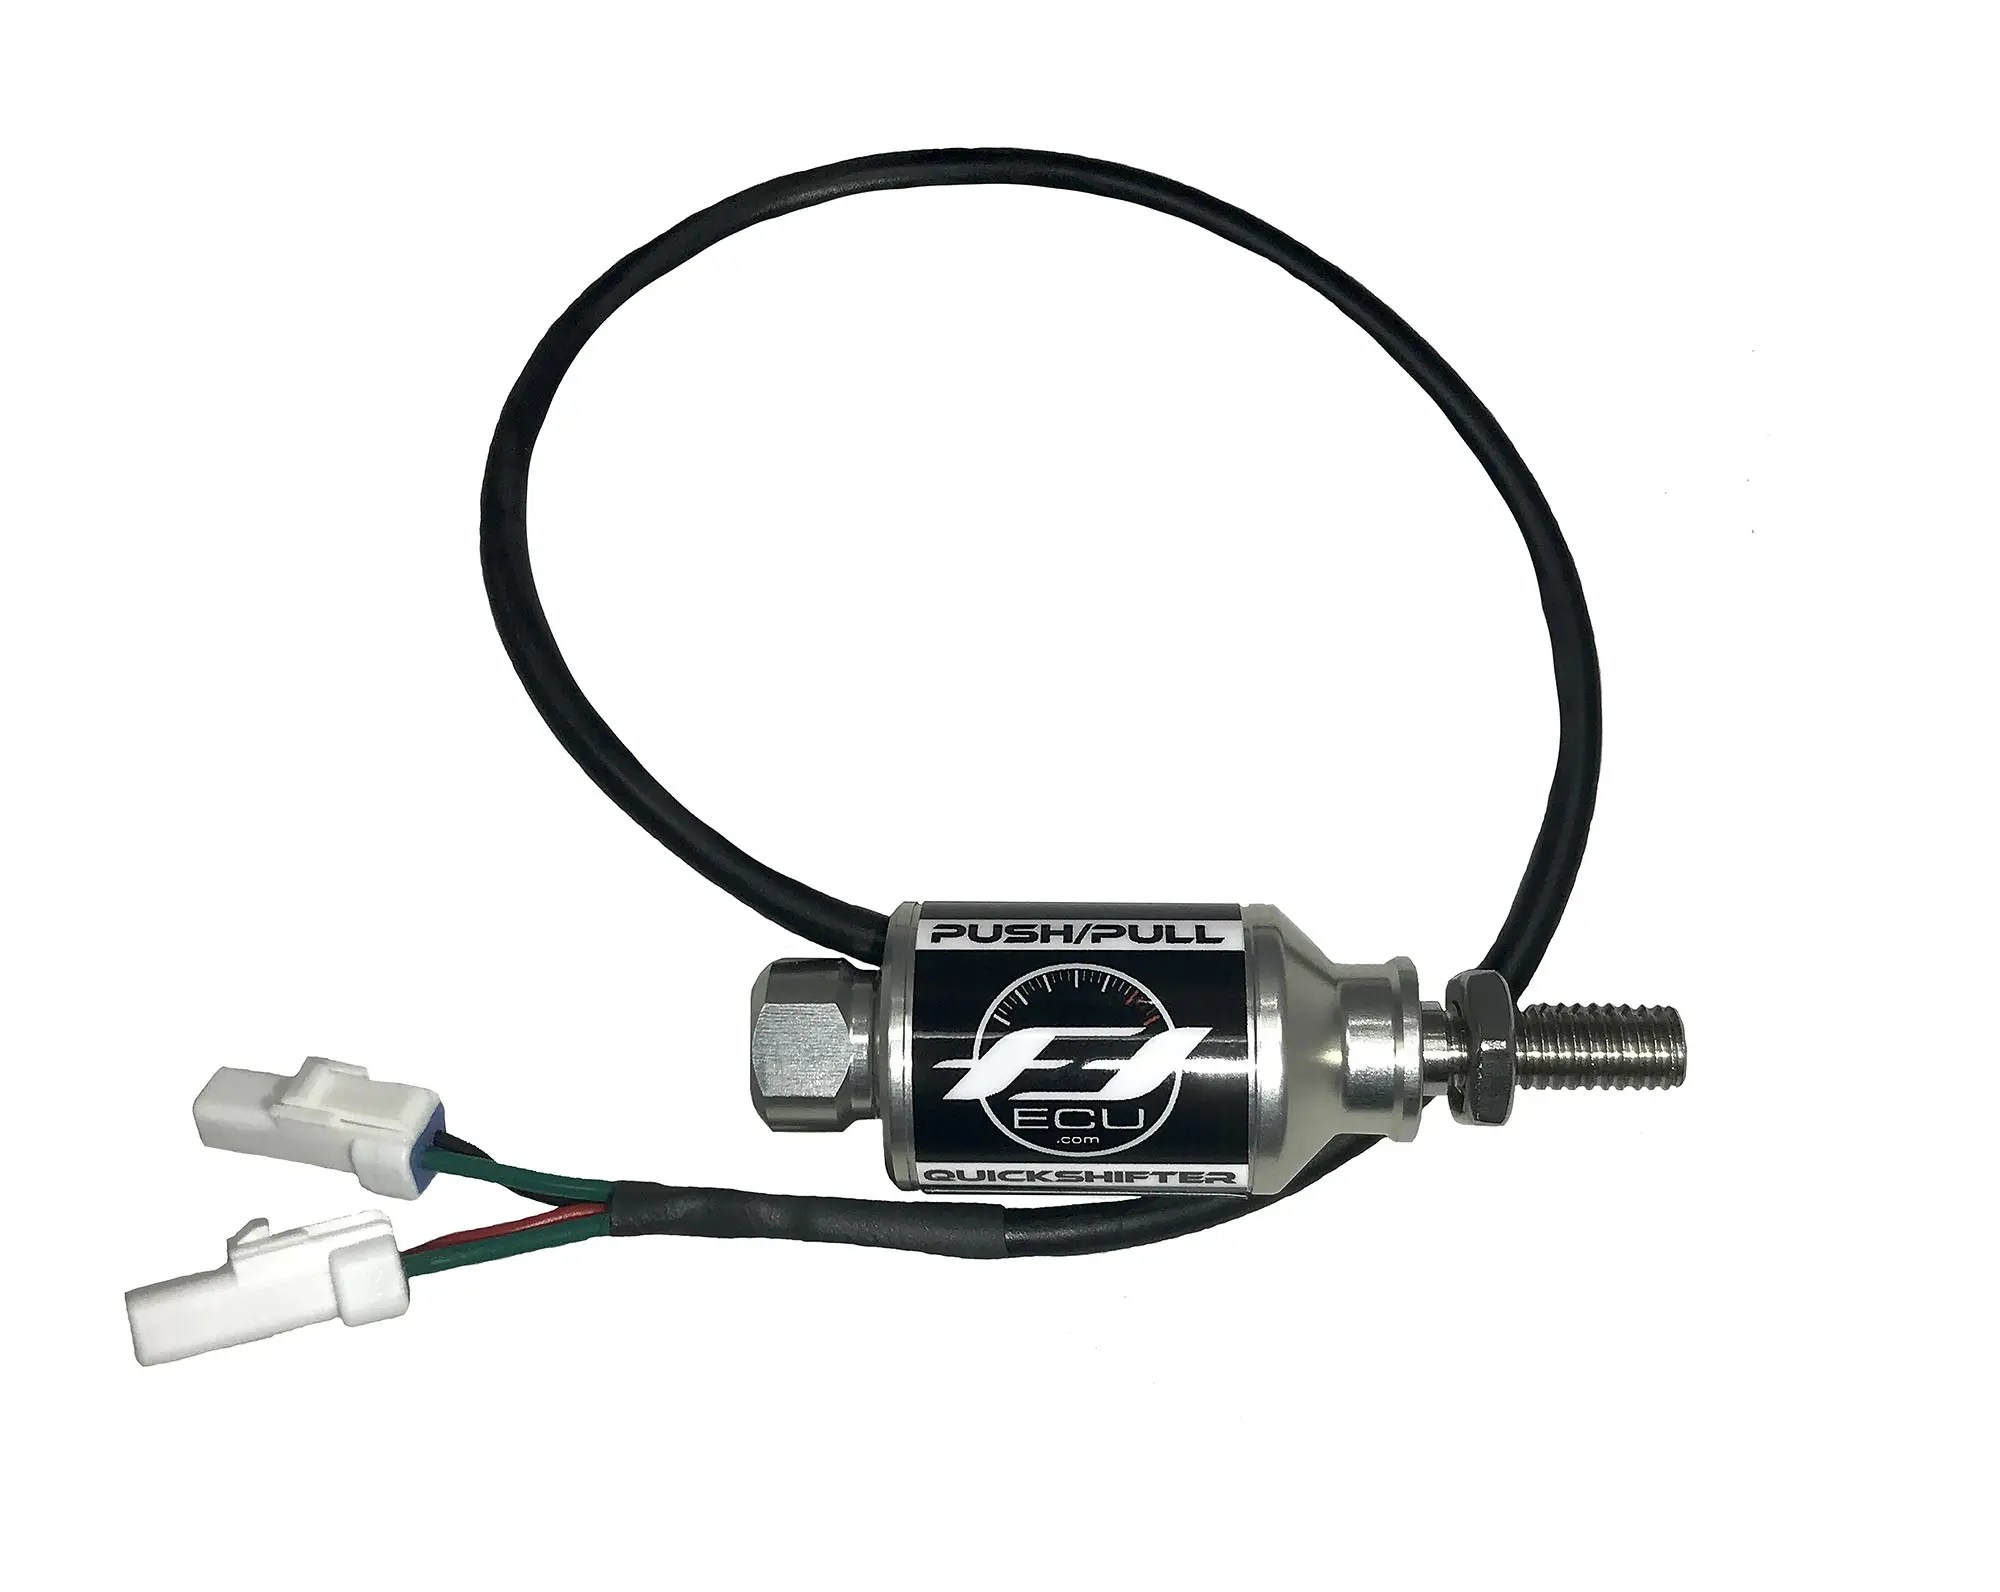 FTecu ECU Based Quick shifter Sensor Replacement